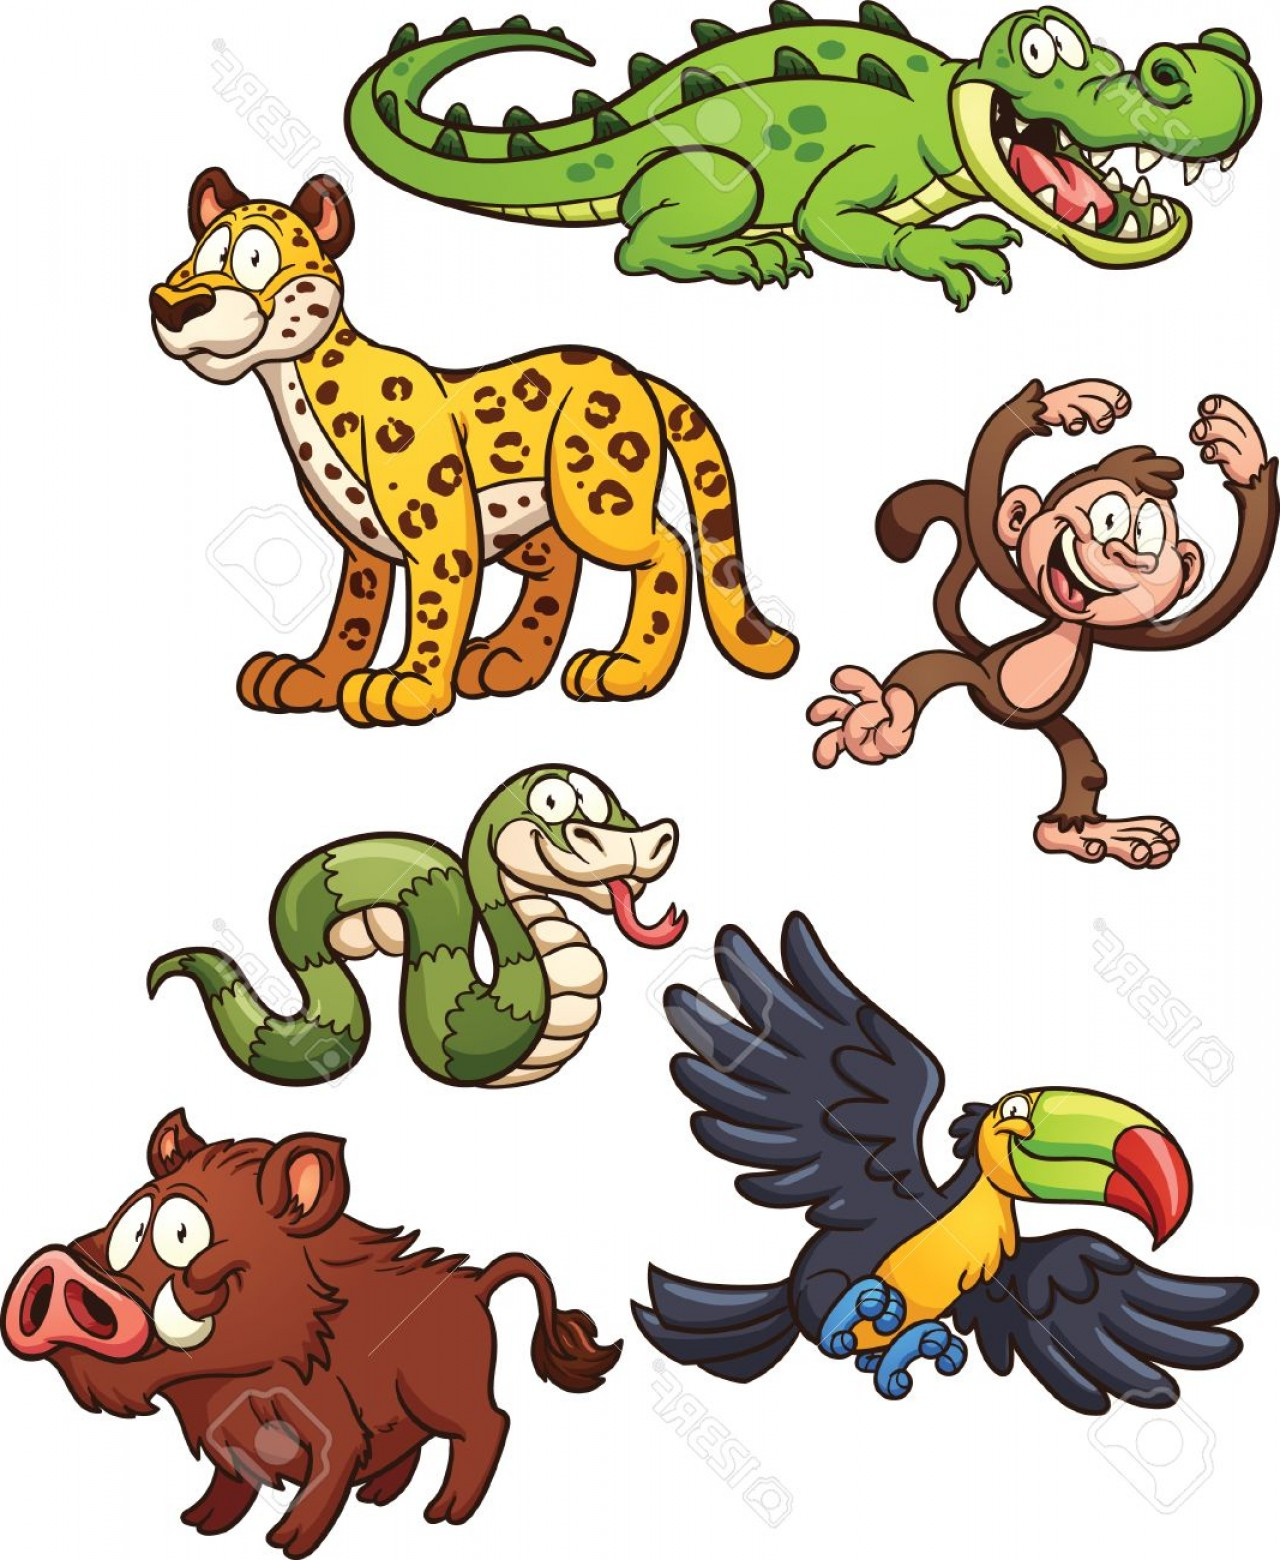 Jungle Animals Clip Art Vector: Photostock Vector Jungle Animals Vector Clip Art Illustration With Simple Gradients Each On A Separate Layer